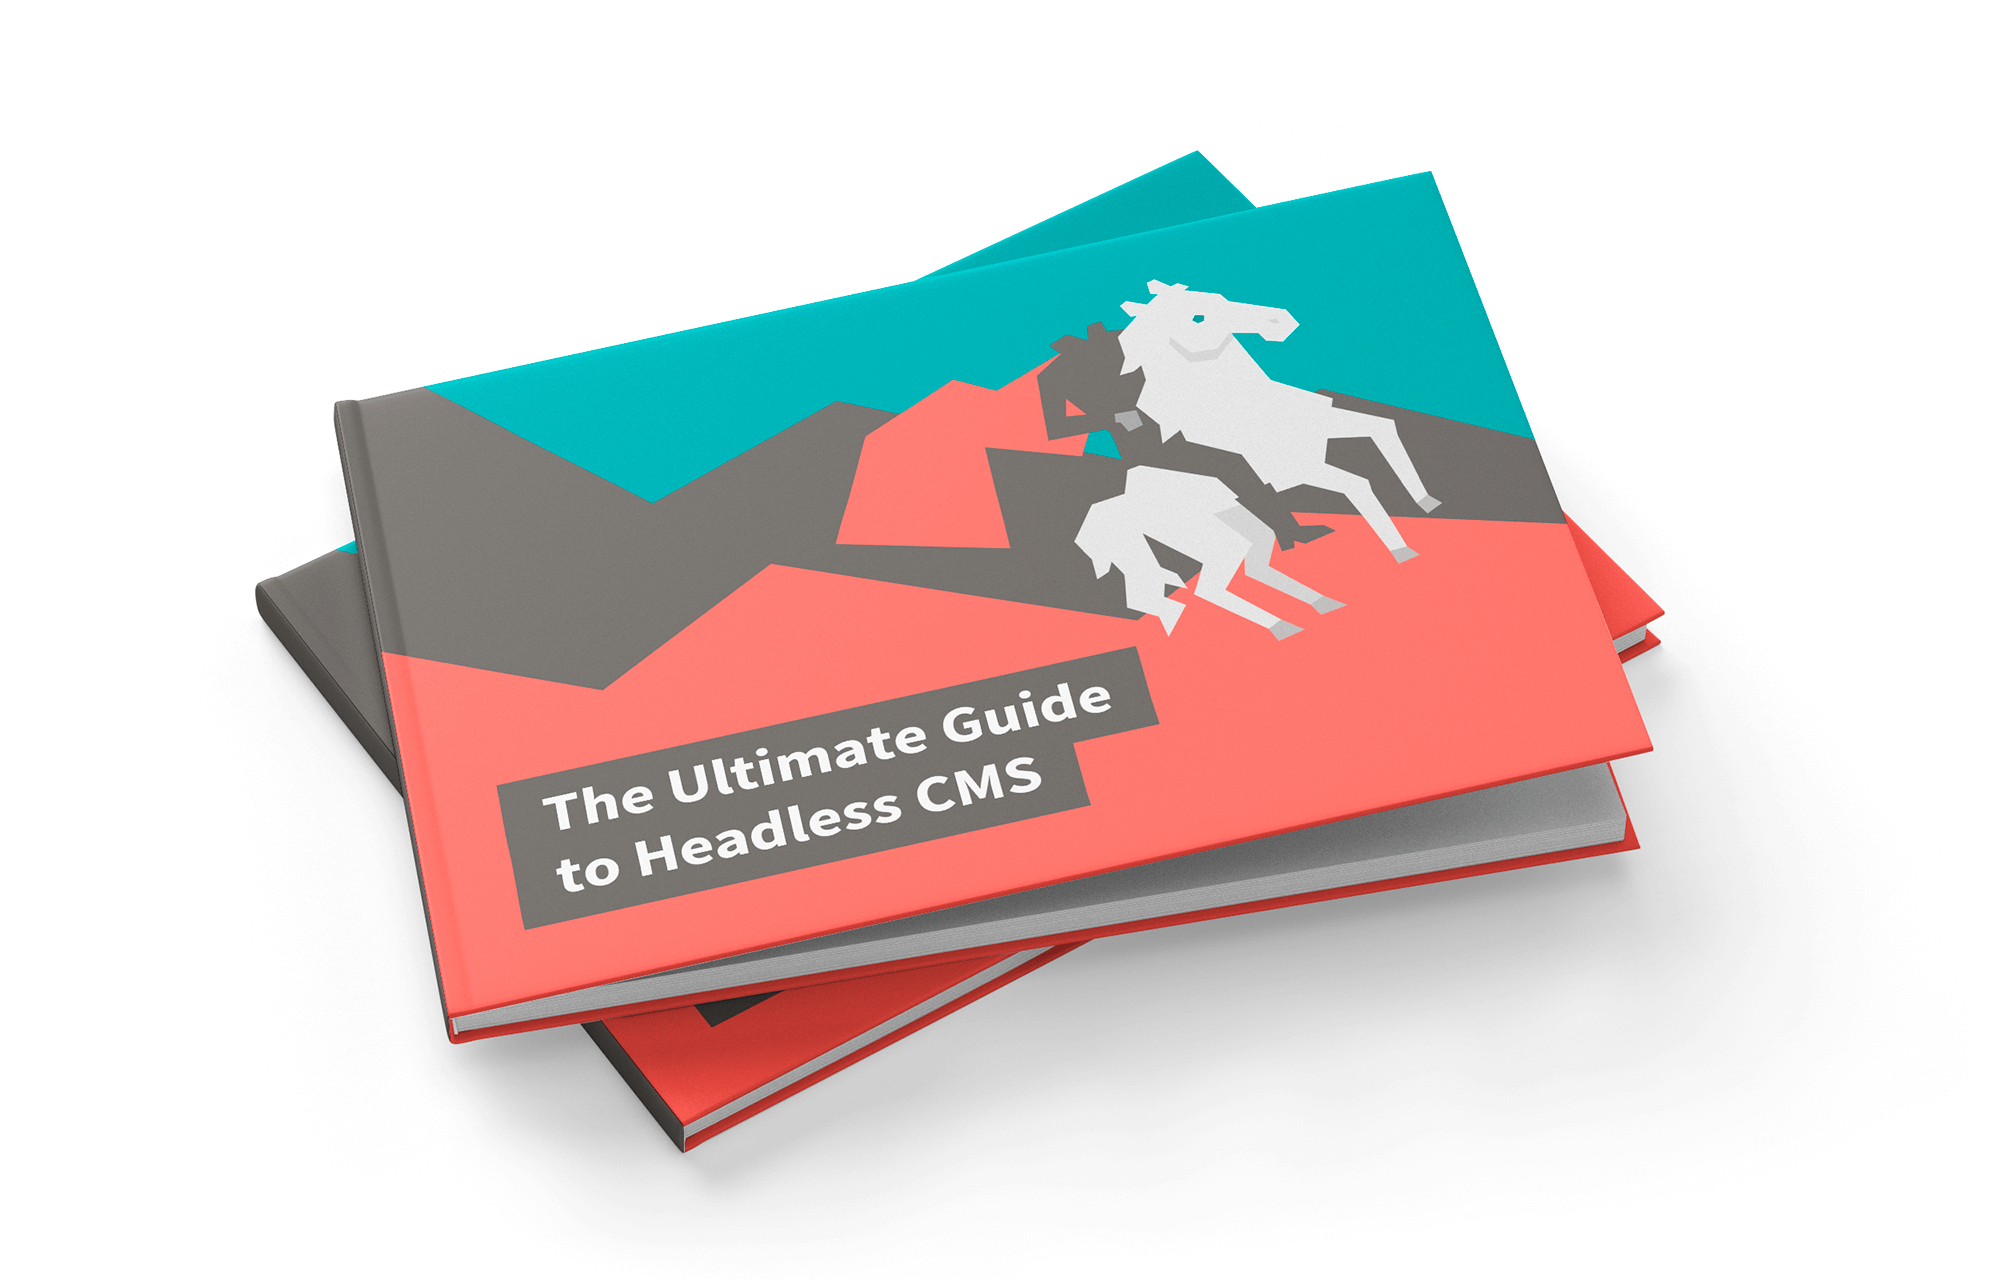 Headless CMS guide